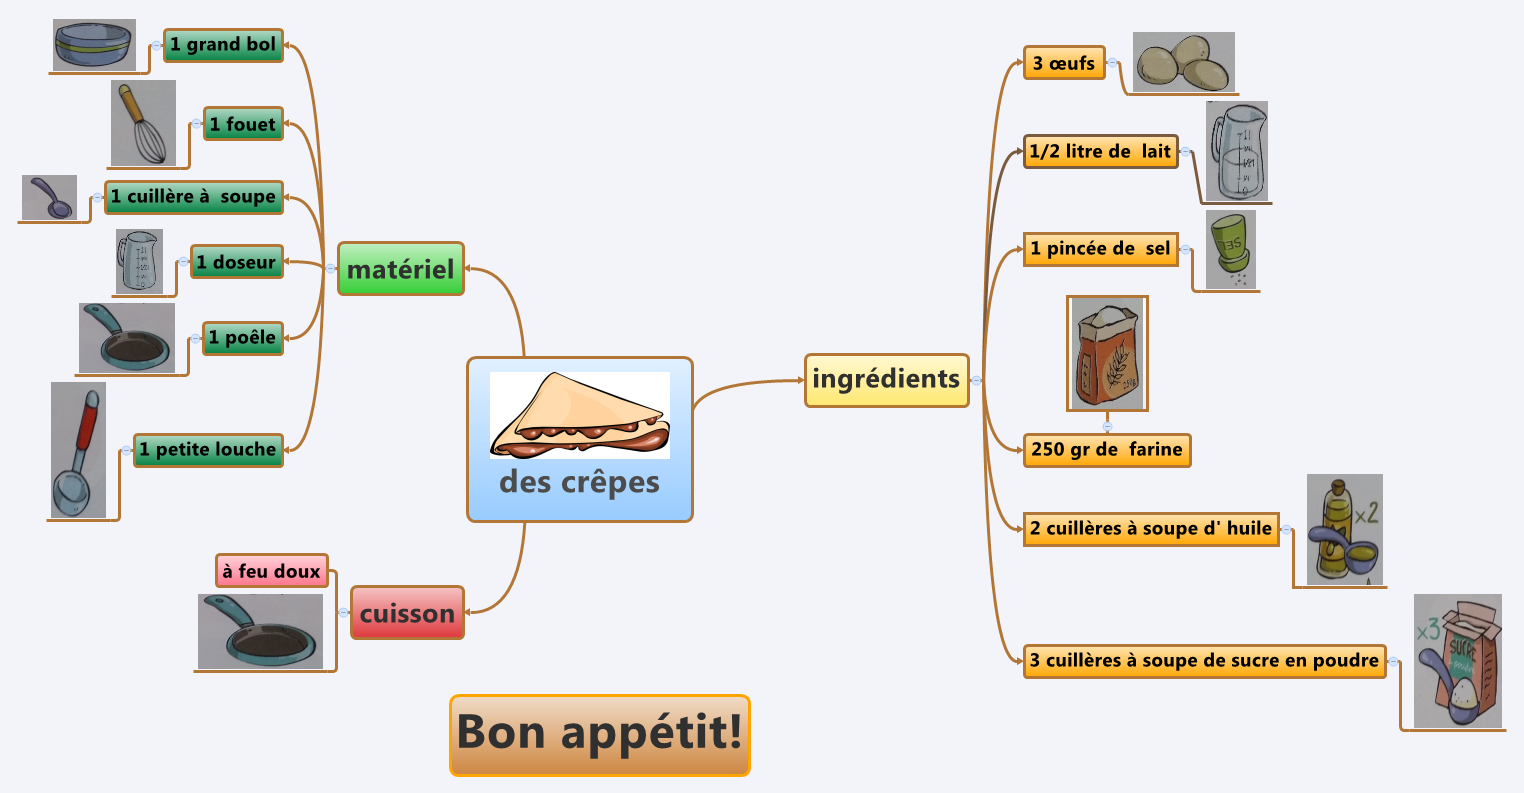 Thumbnail of mind map